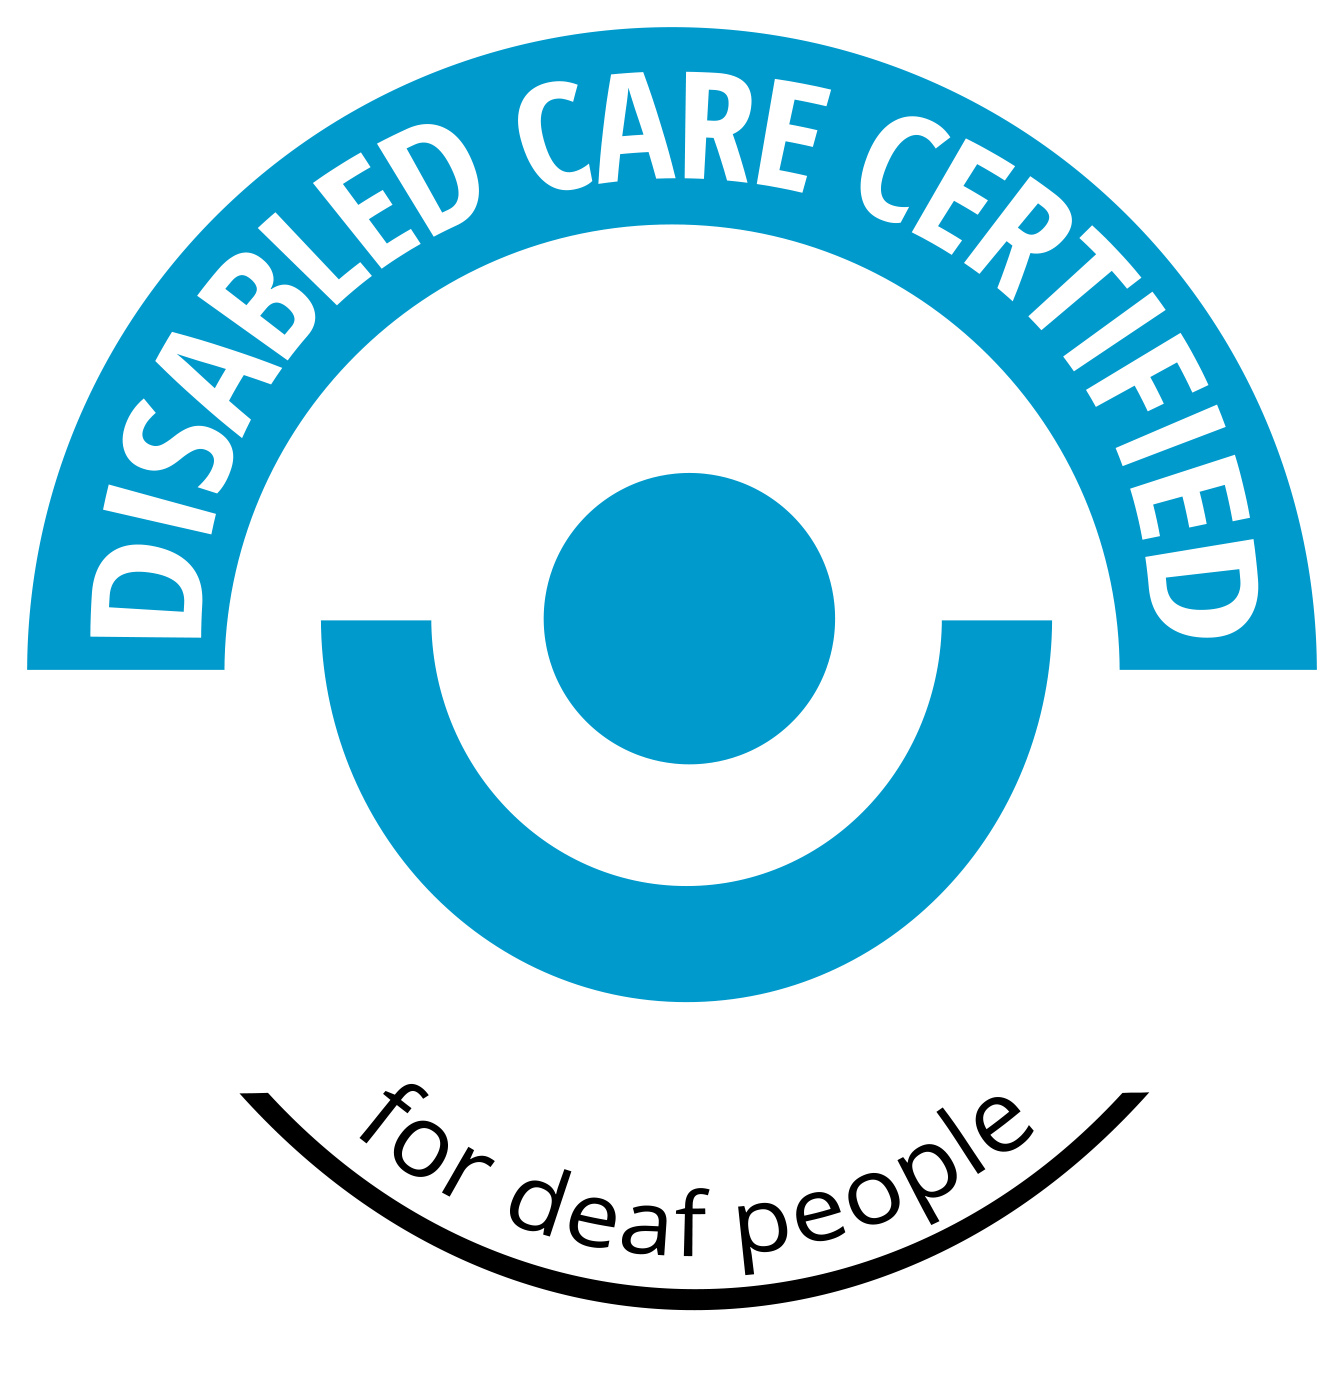 Sello de Accesibilidad - Disabled Care Certified